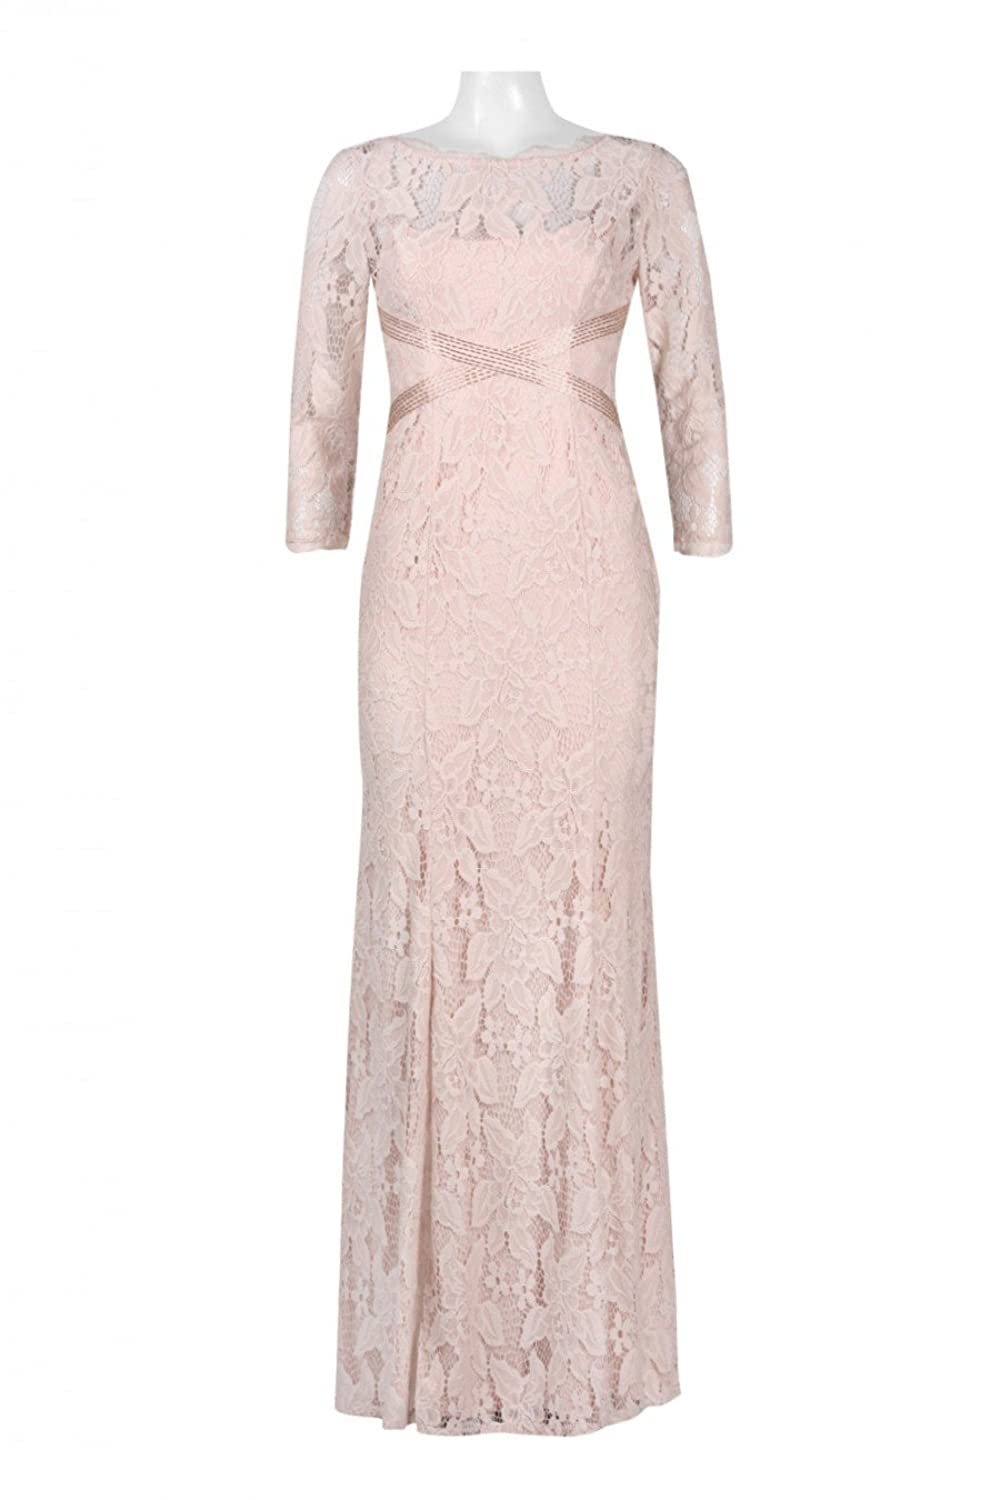 Adrianna Papell Long V-Neck Sequin Lace Gown Mulberry Size 6M at ...